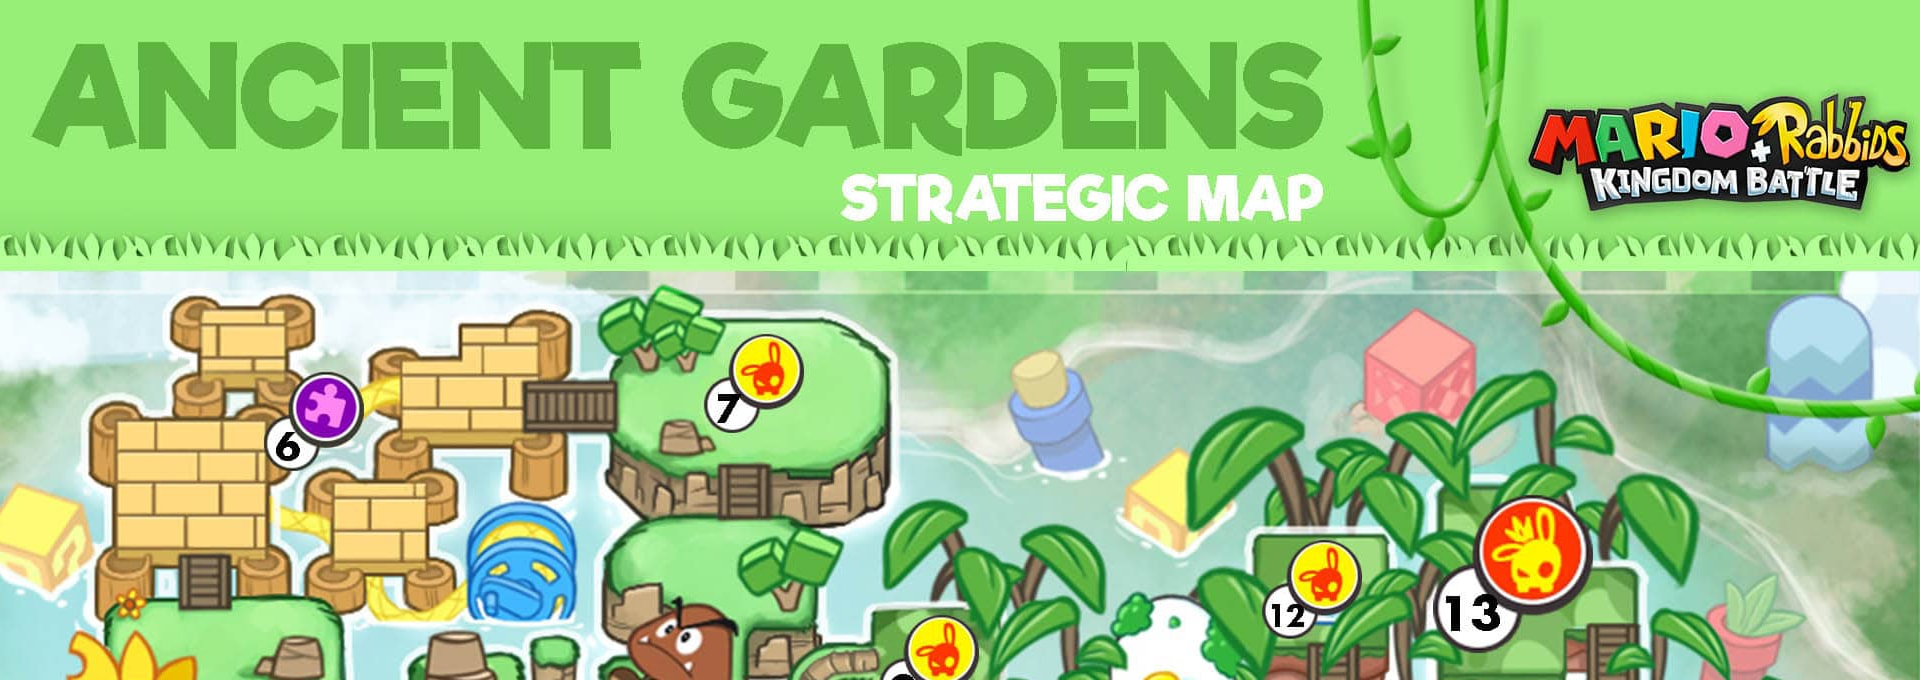 [2017-09-14] Ancient Garden Map - HEADER